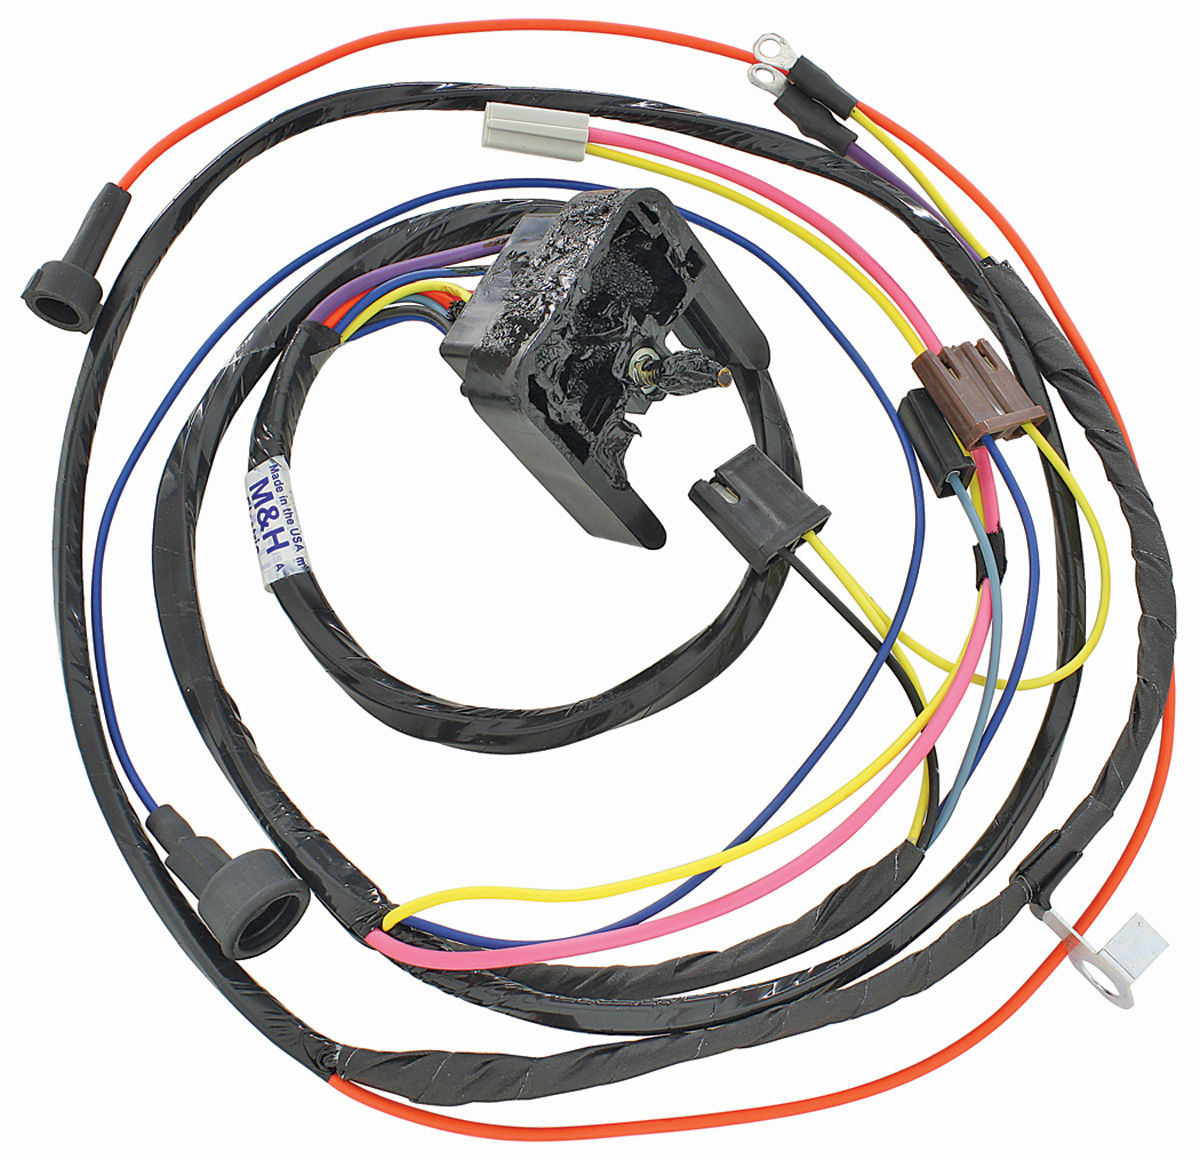 38947 lrg?v=102520130818 m&h 1968 69 chevelle engine harness 396 hei w warning lights hei wiring harness at gsmx.co